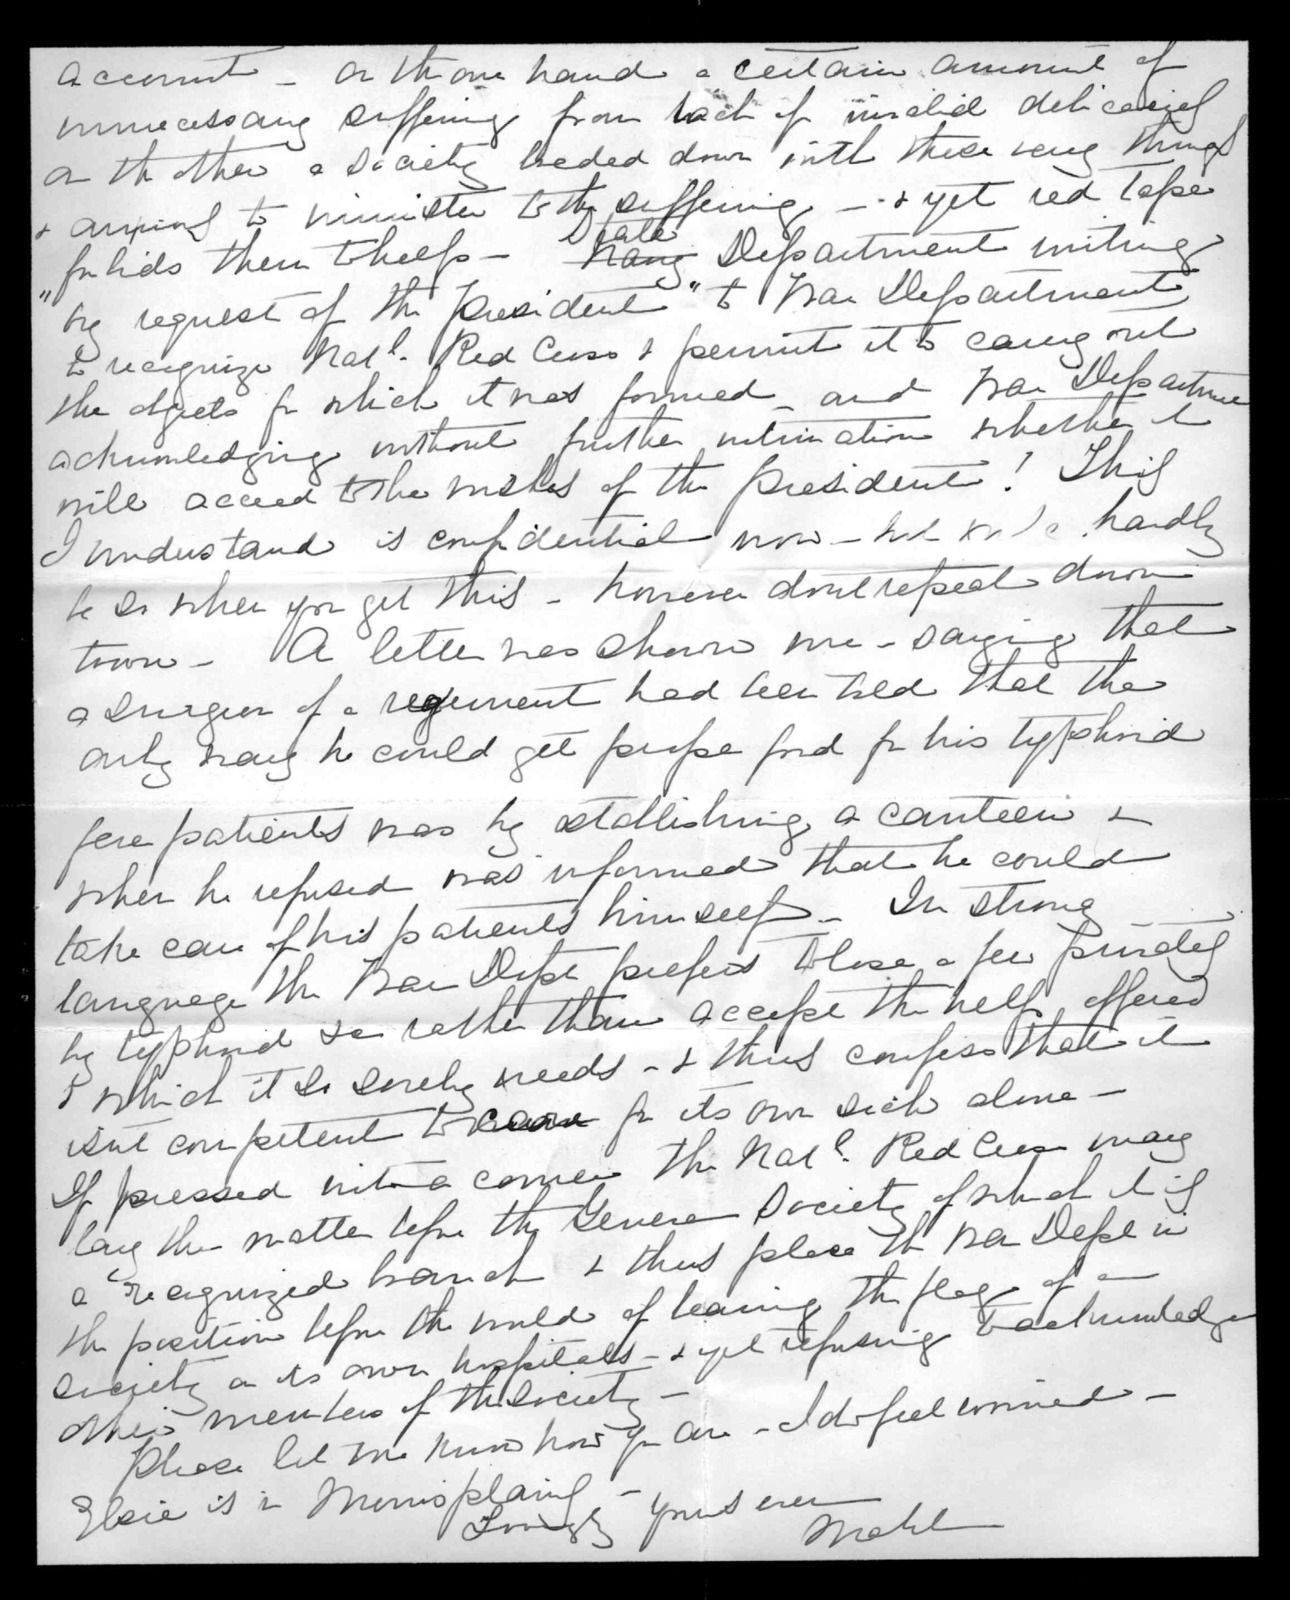 Letter from Mabel Hubbard Bell to Alexander Graham Bell, June 3, 1898